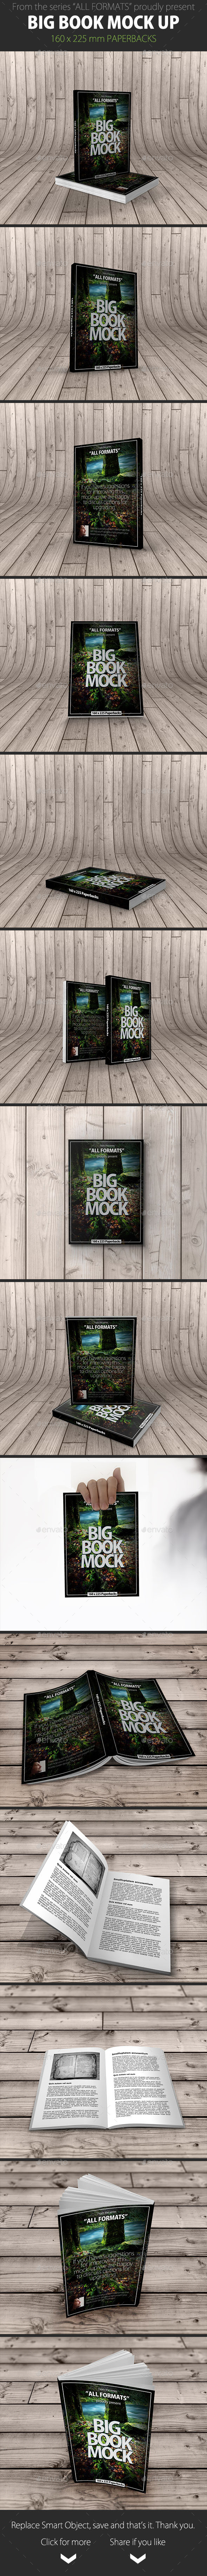 GraphicRiver Book Mockup Dimension 160 x 225 mm Paperbacks 9553265